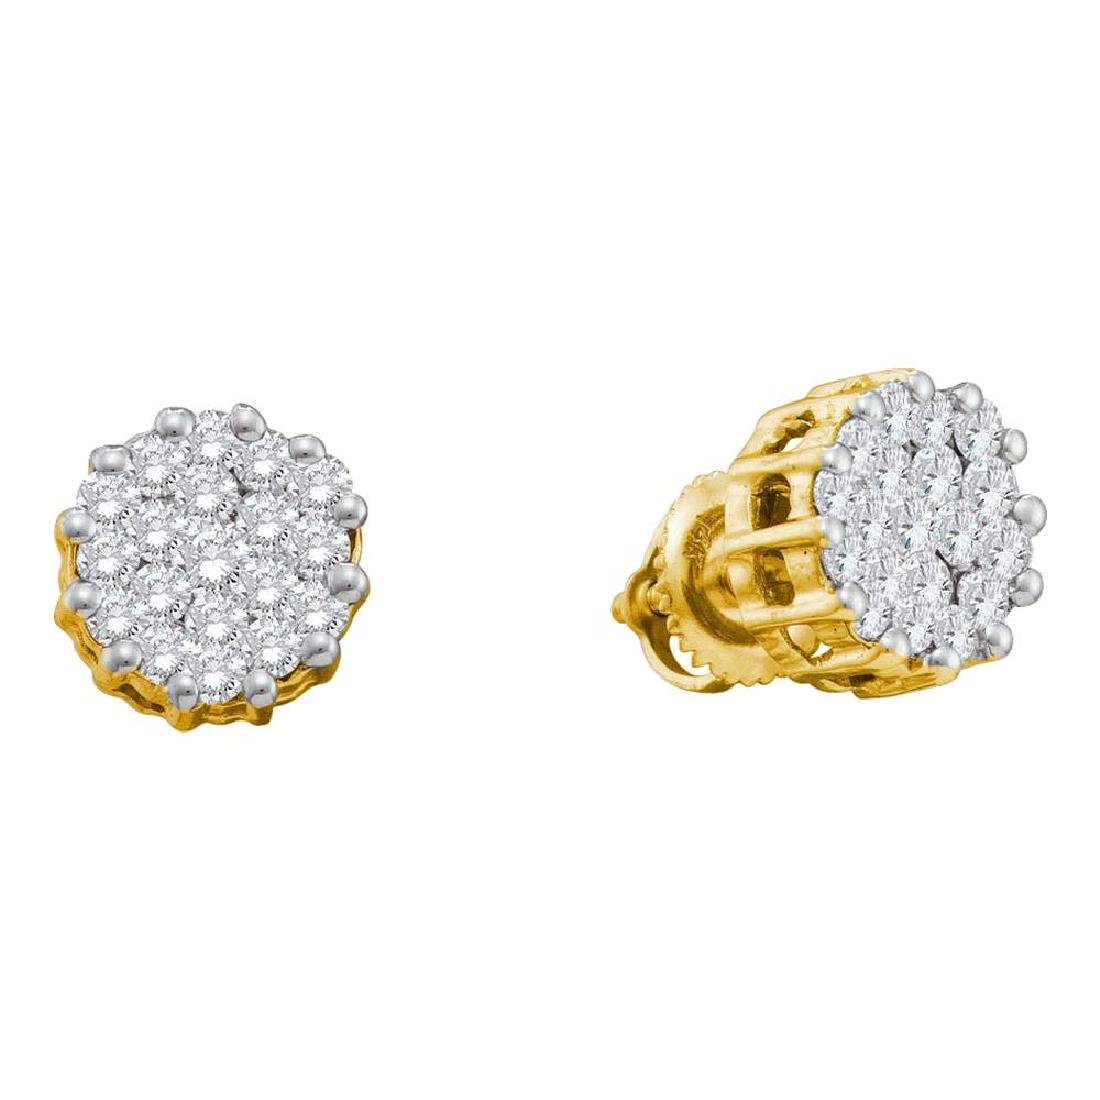 1 CTW Diamond Cluster Earrings 14KT Yellow Gold -